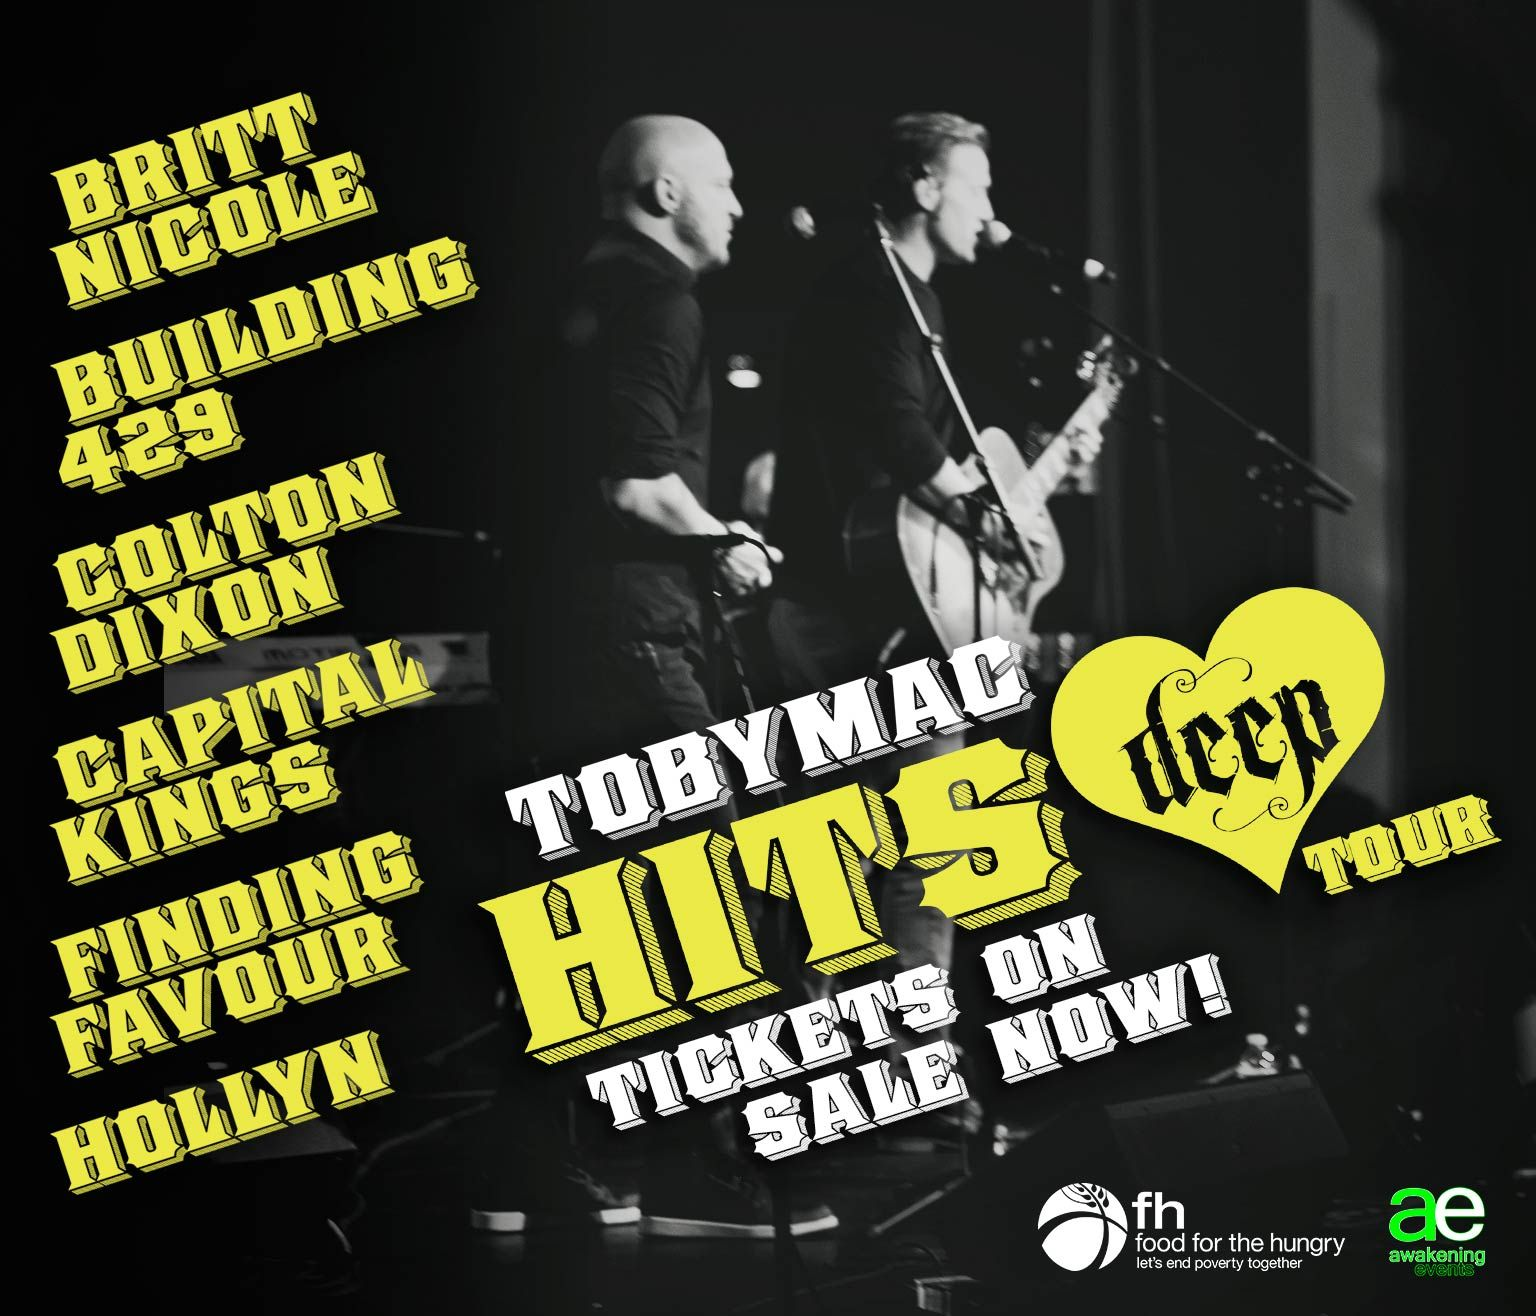 Do you have your tickets yet?? The #HitsDeepTour is getting closer, so get 'em while you can! http://air1.cta.gs/0v8